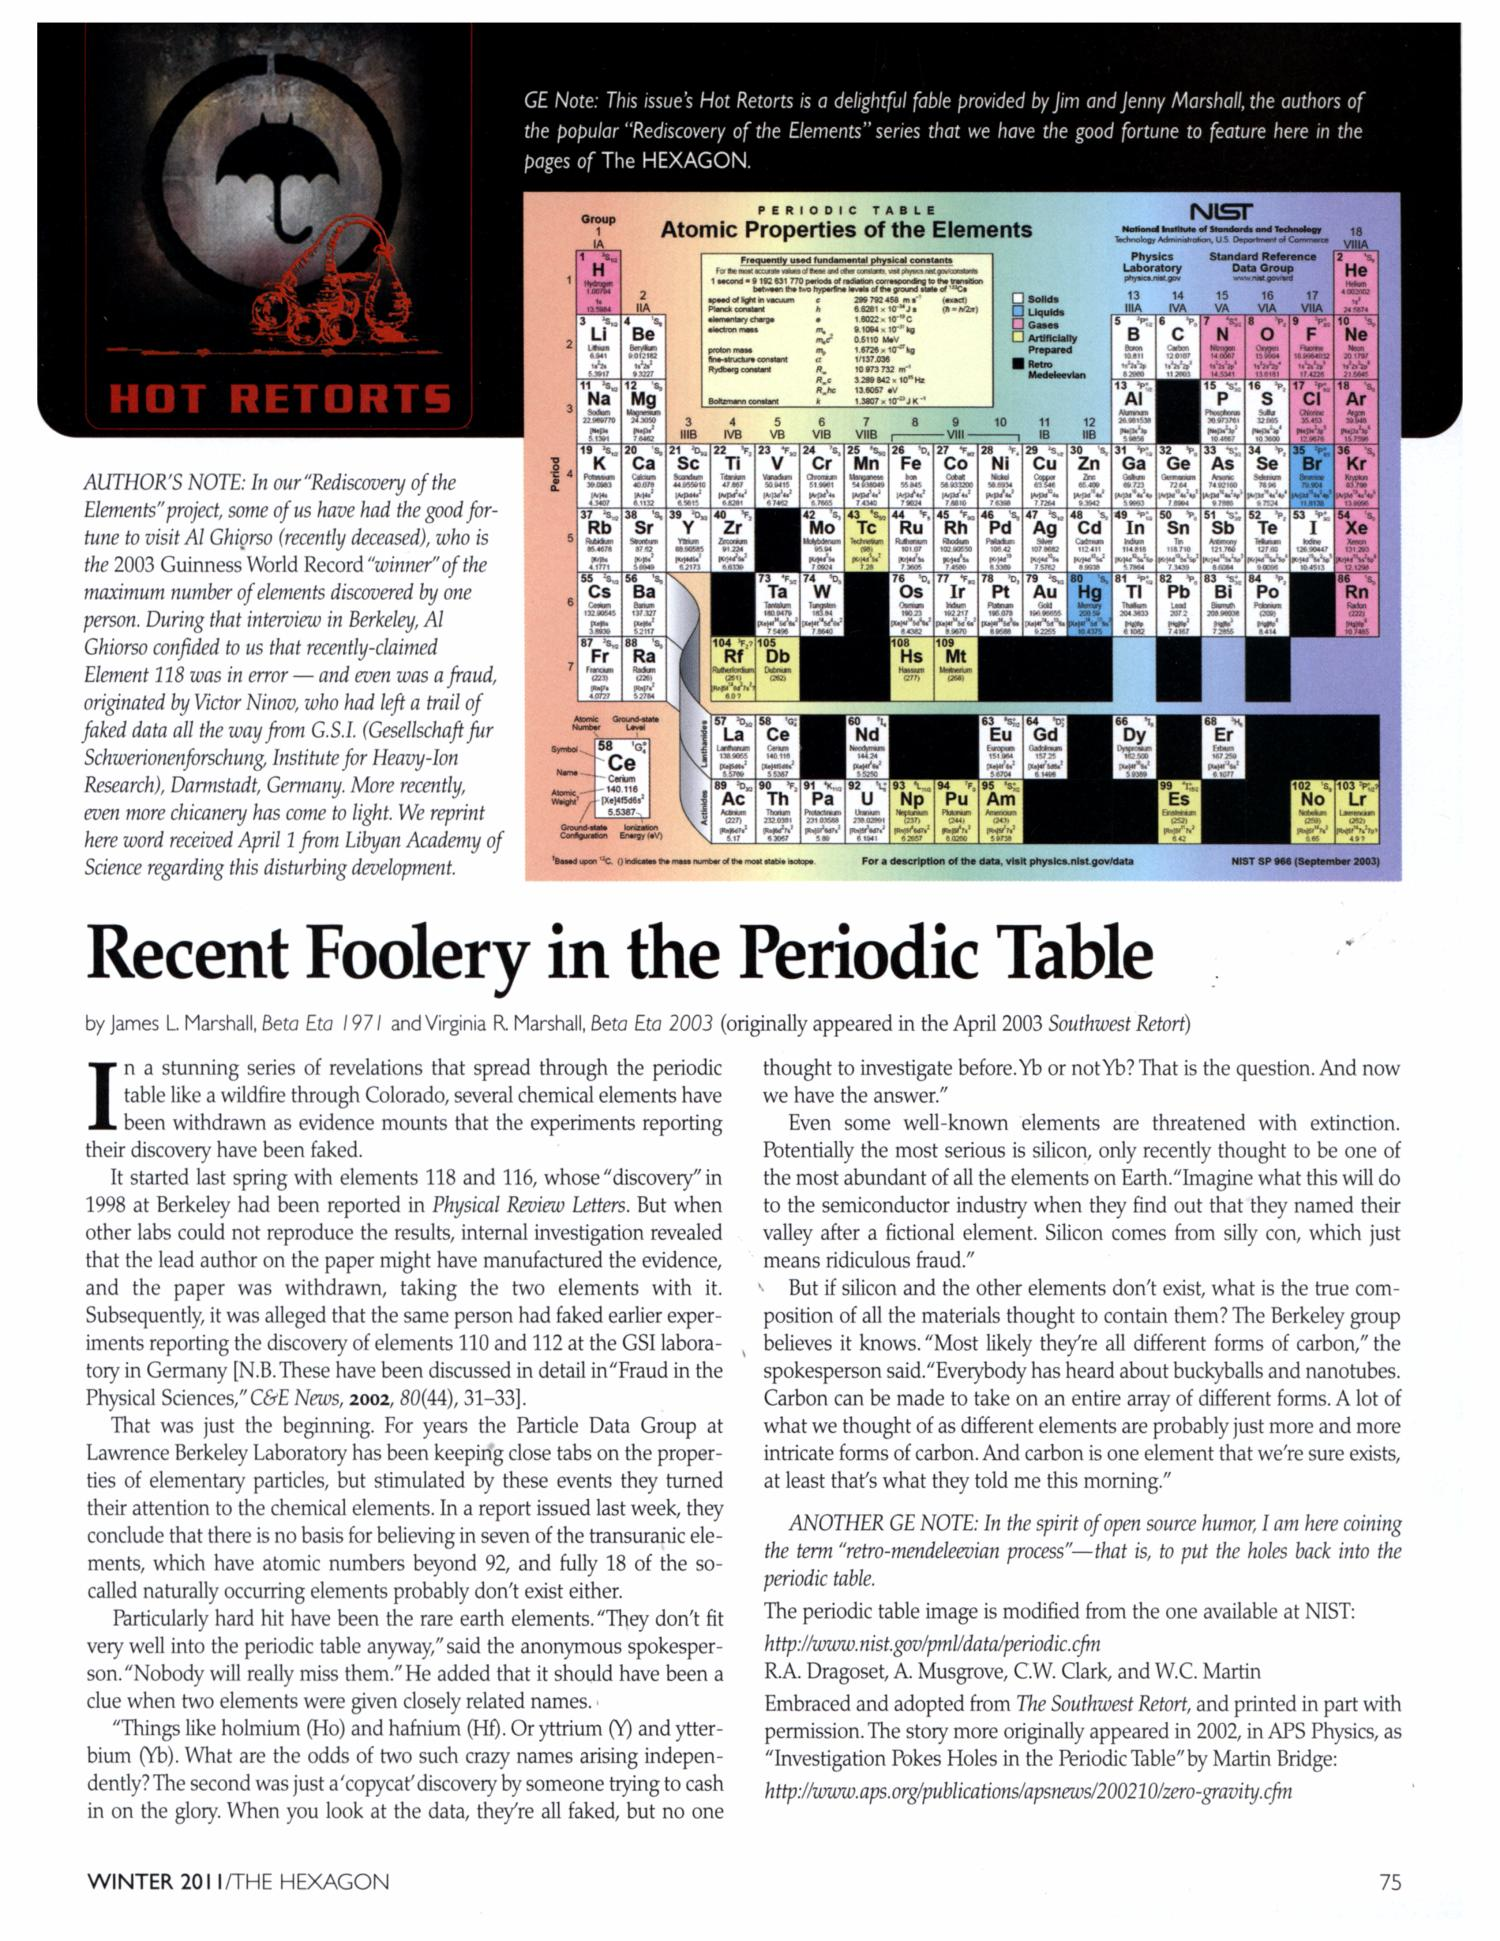 Recent Foolery in the Periodic Table                                                                                                      75